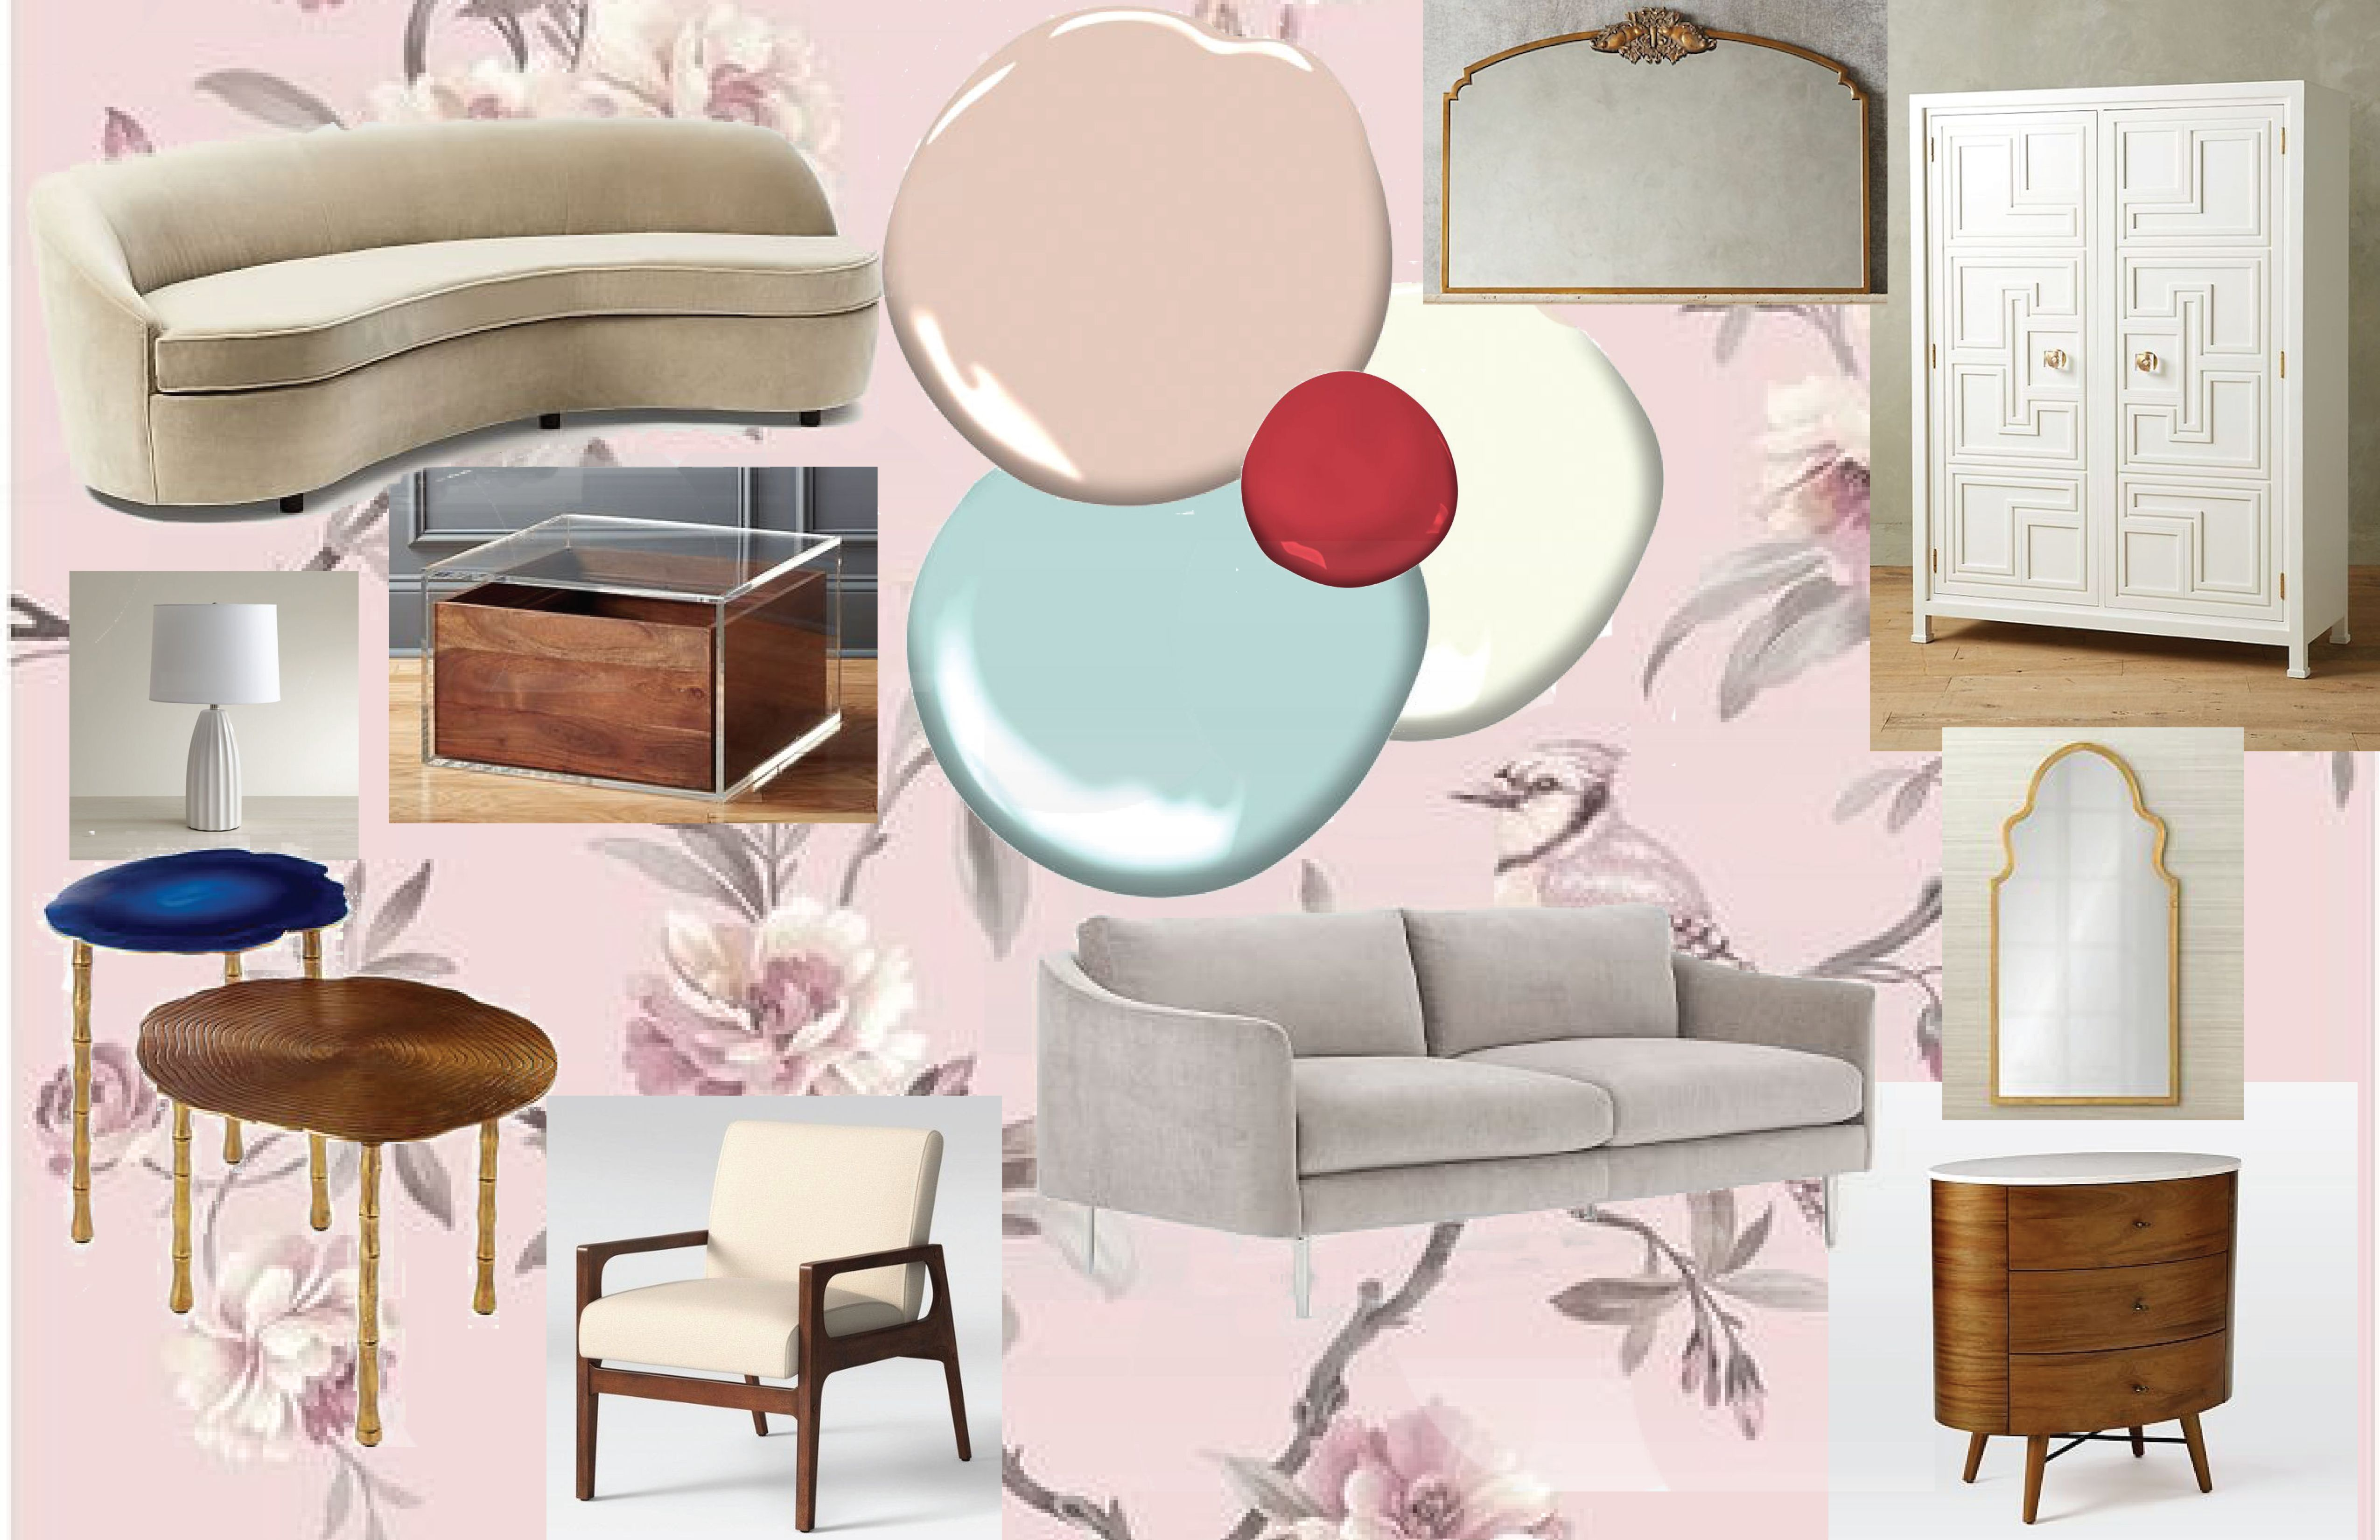 Get The Look The Marvelous Mrs. Maisel's MidCentury